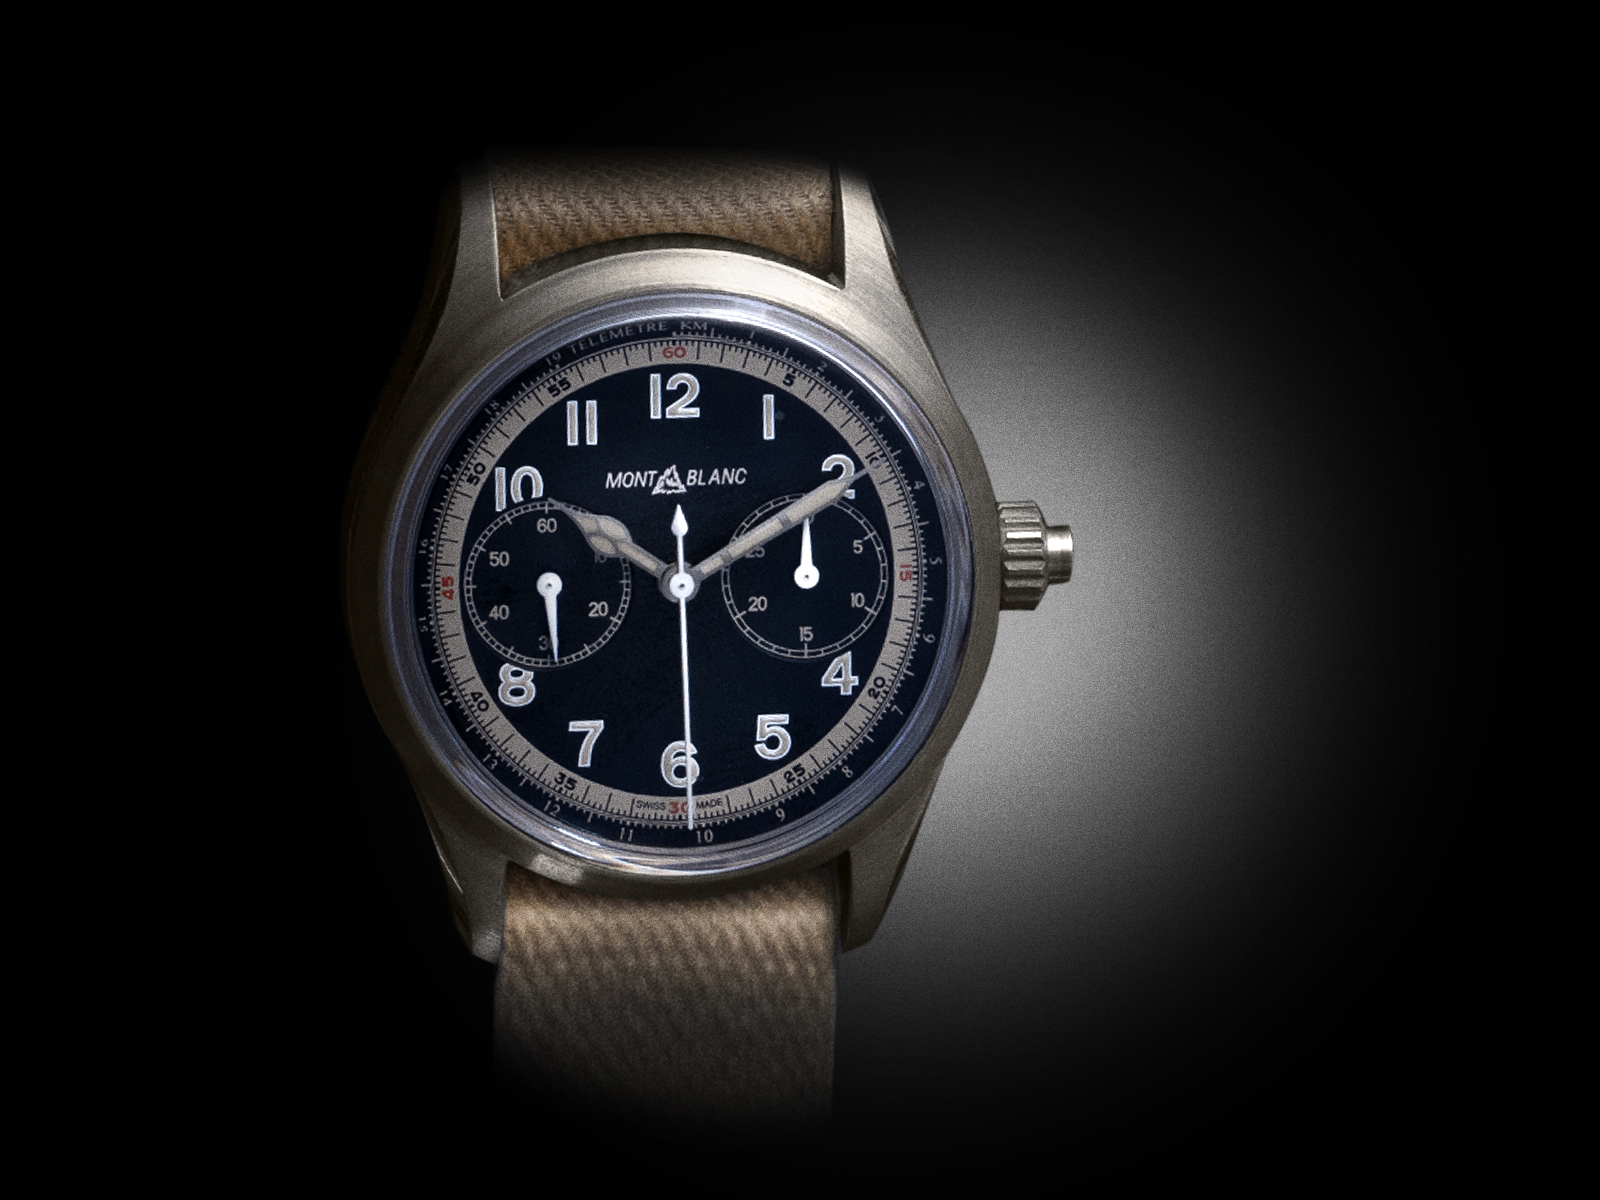 The Montblanc 1858 Monopusher Chronograph in bronze. - www.revolution.watch